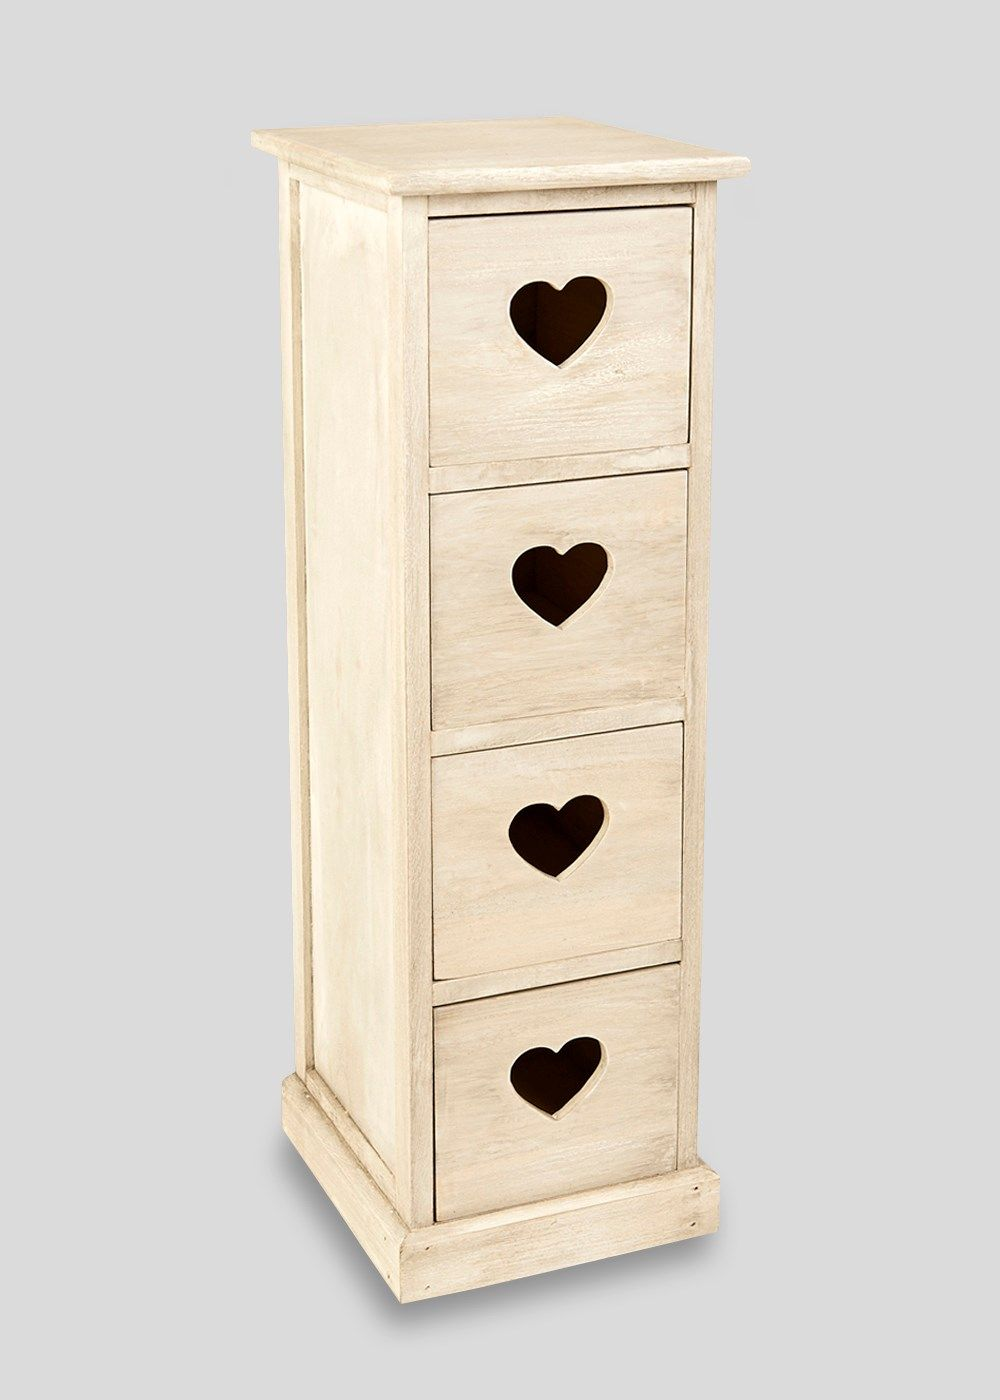 4 Drawer Wooden Storage Unit 25cm X 29cm 80 5cm View 1